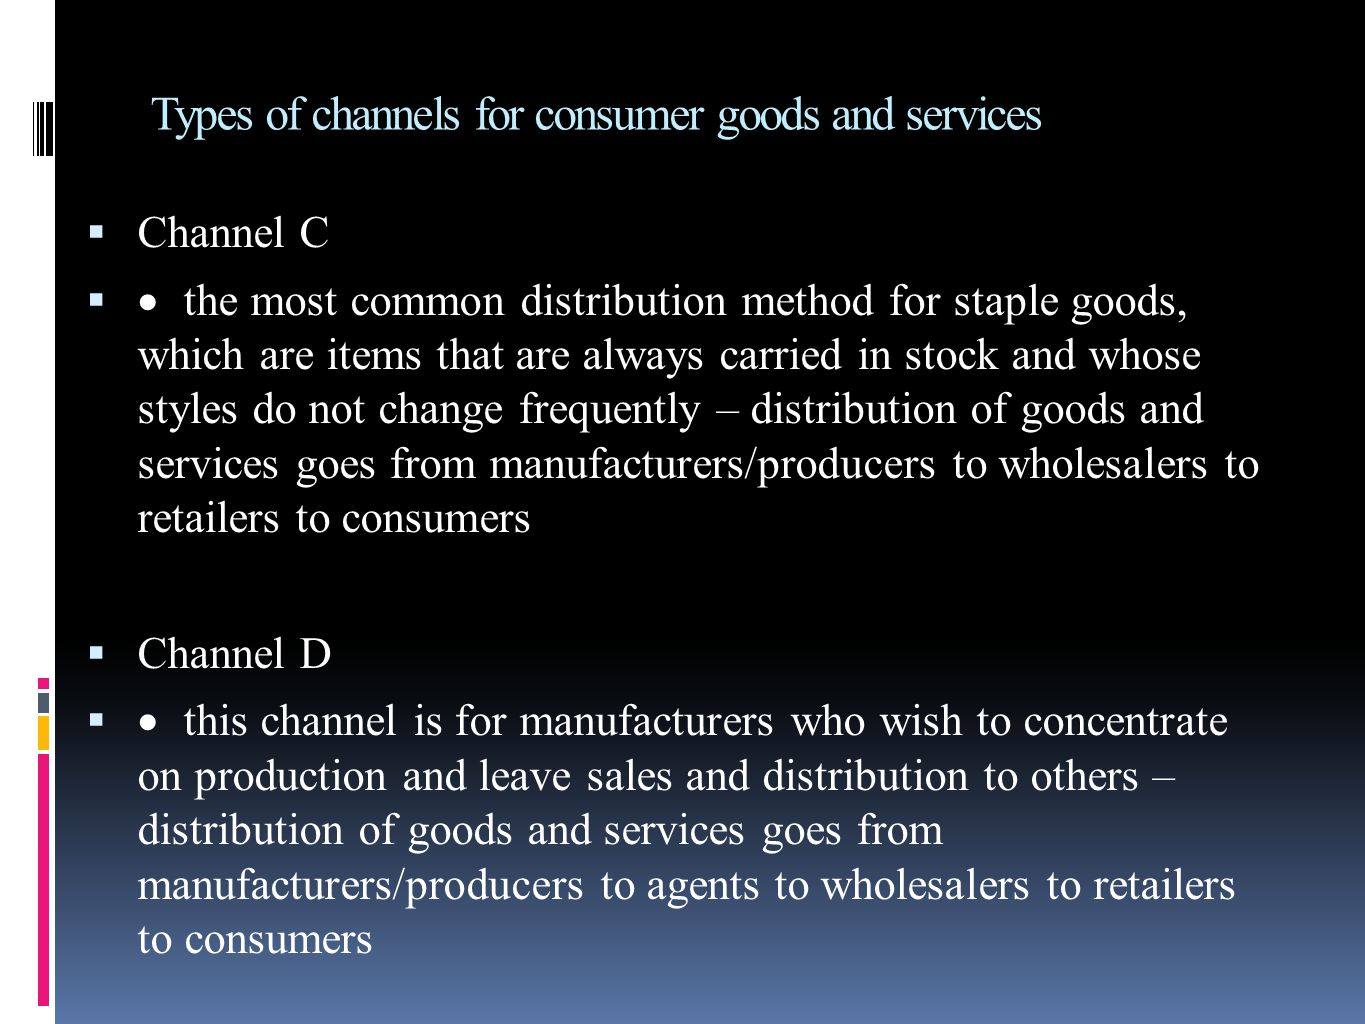 Types of channels for consumer goods and services